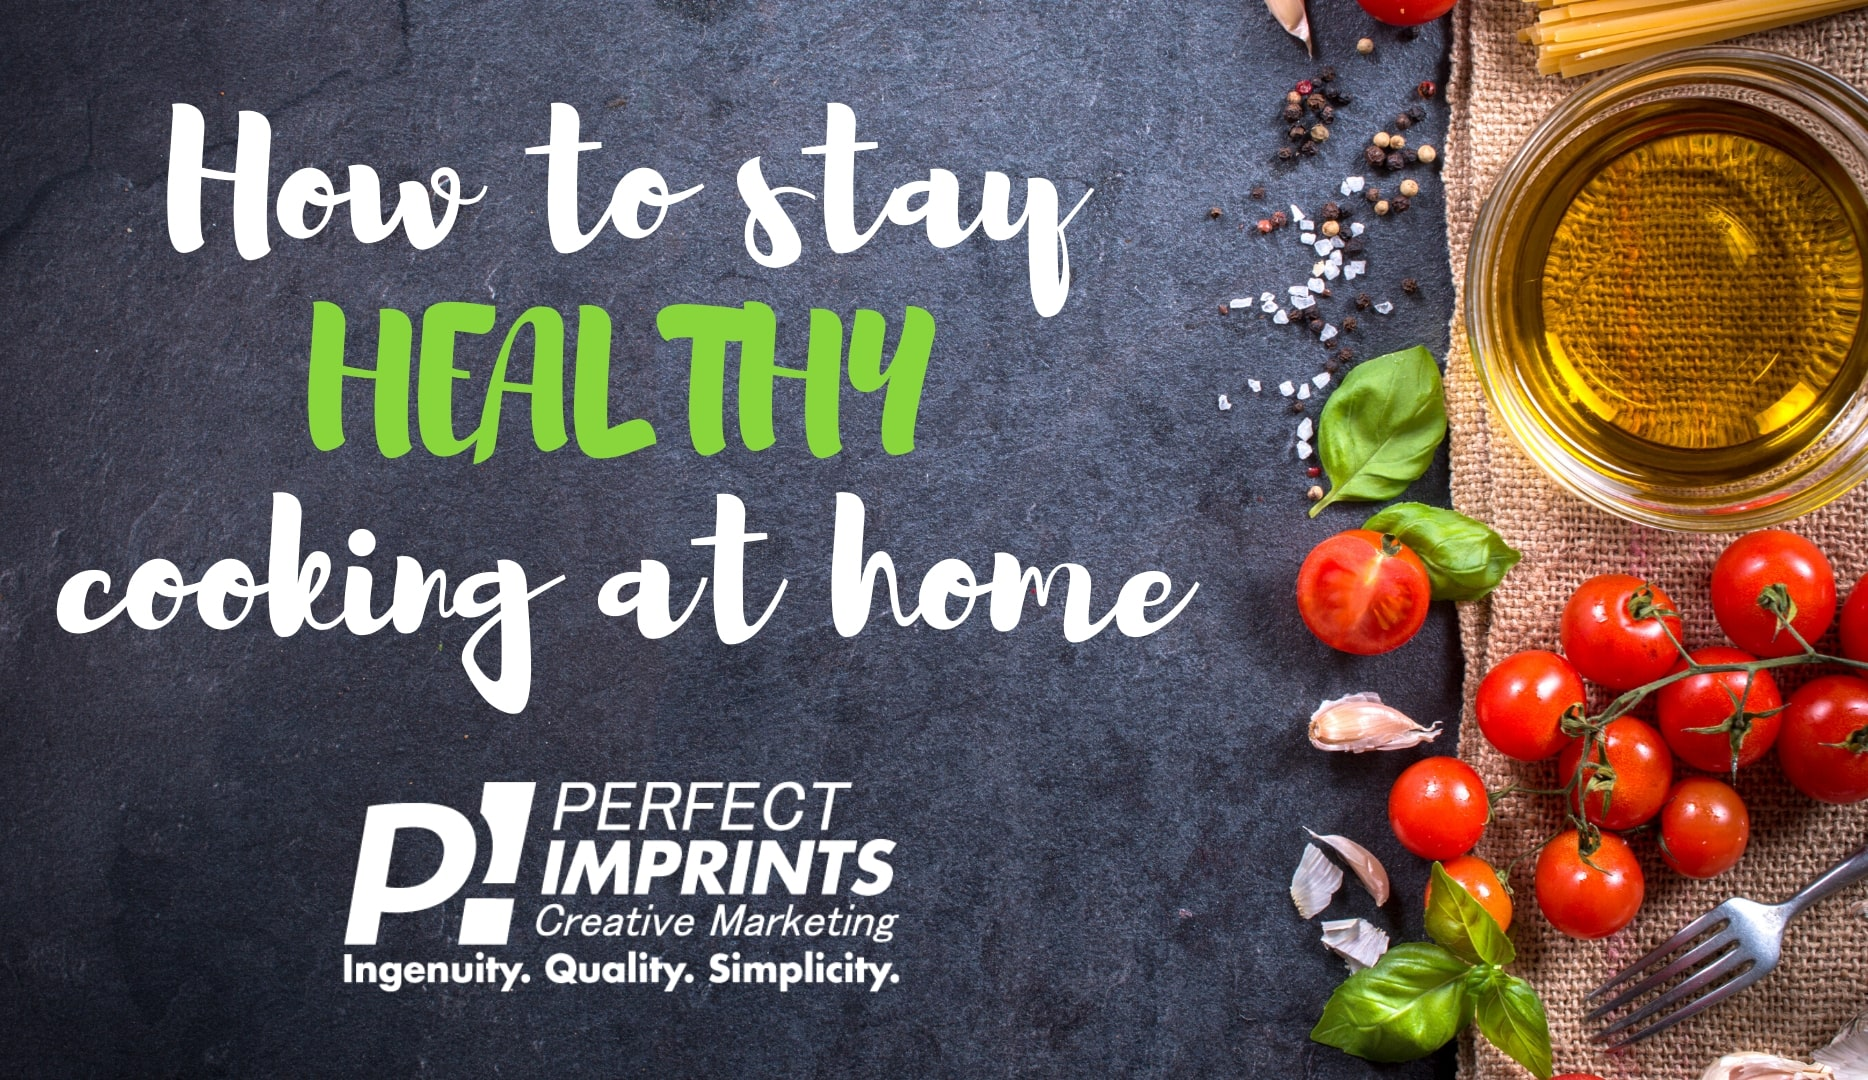 Kitchen Promotional Products Help Clients Stay Healthy